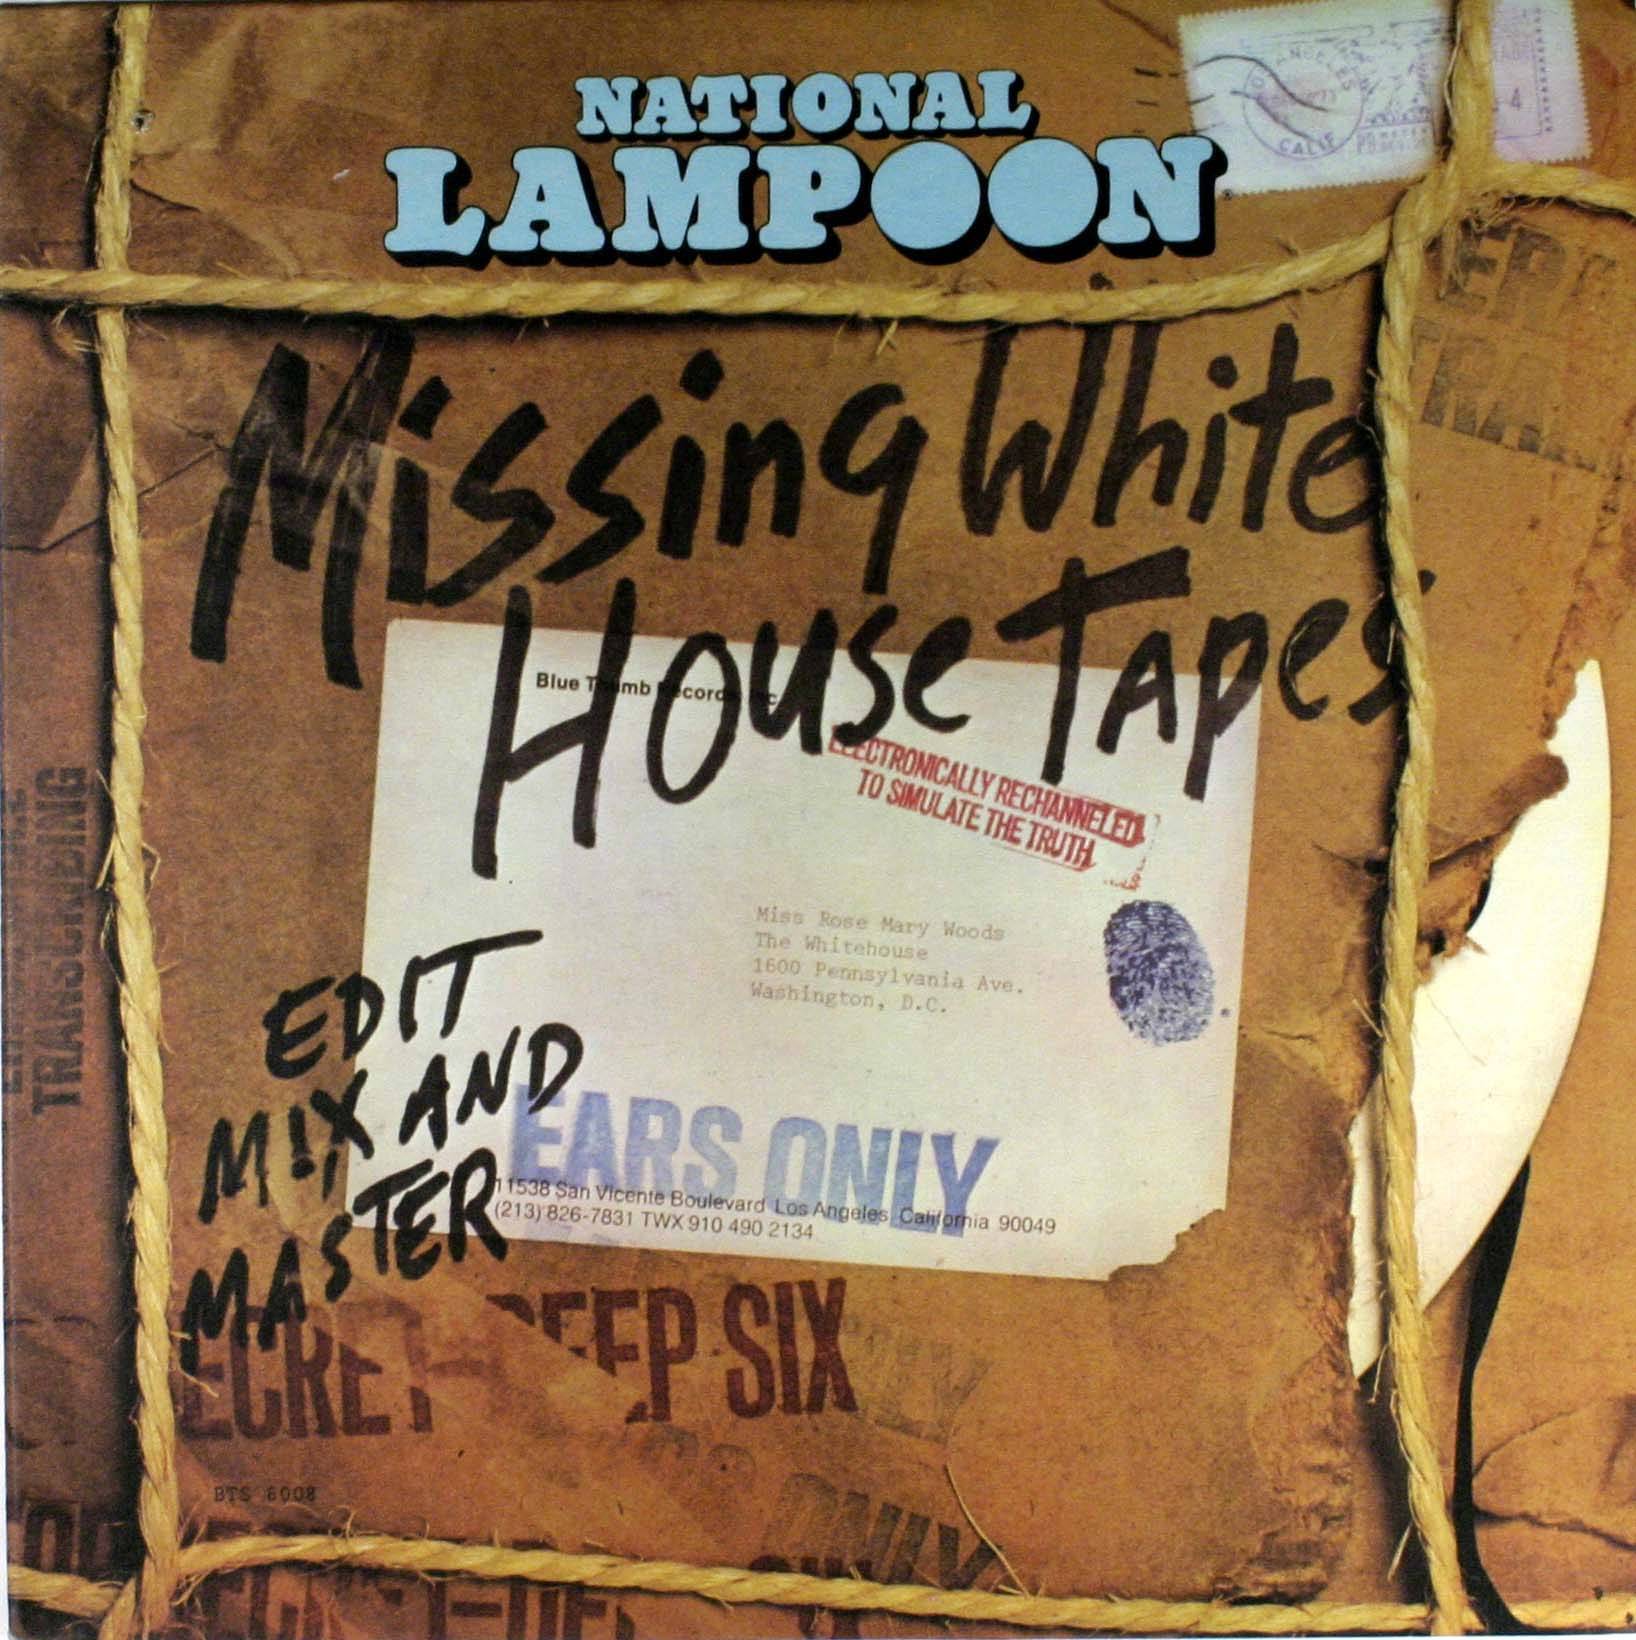 National Lampoon - Missing White House Tapes Album